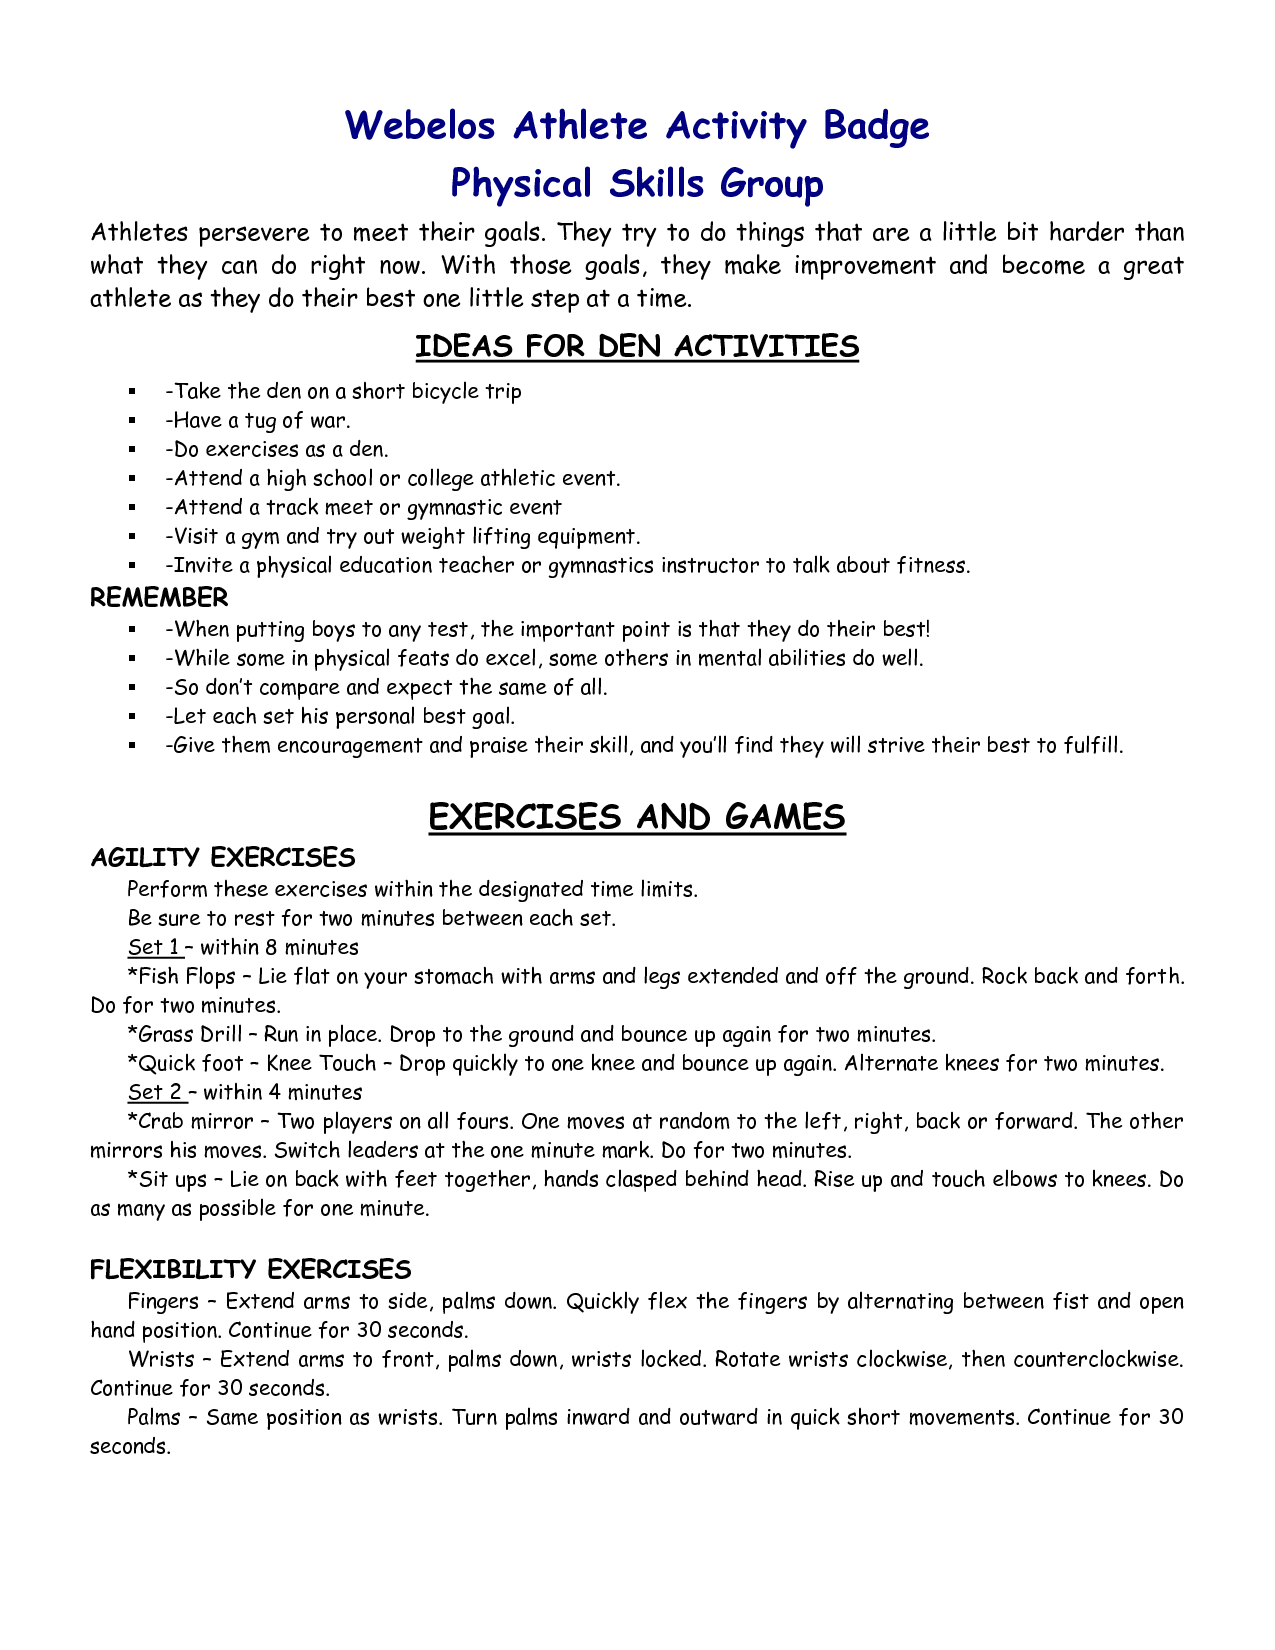 Webelos Fitness Badge Worksheet